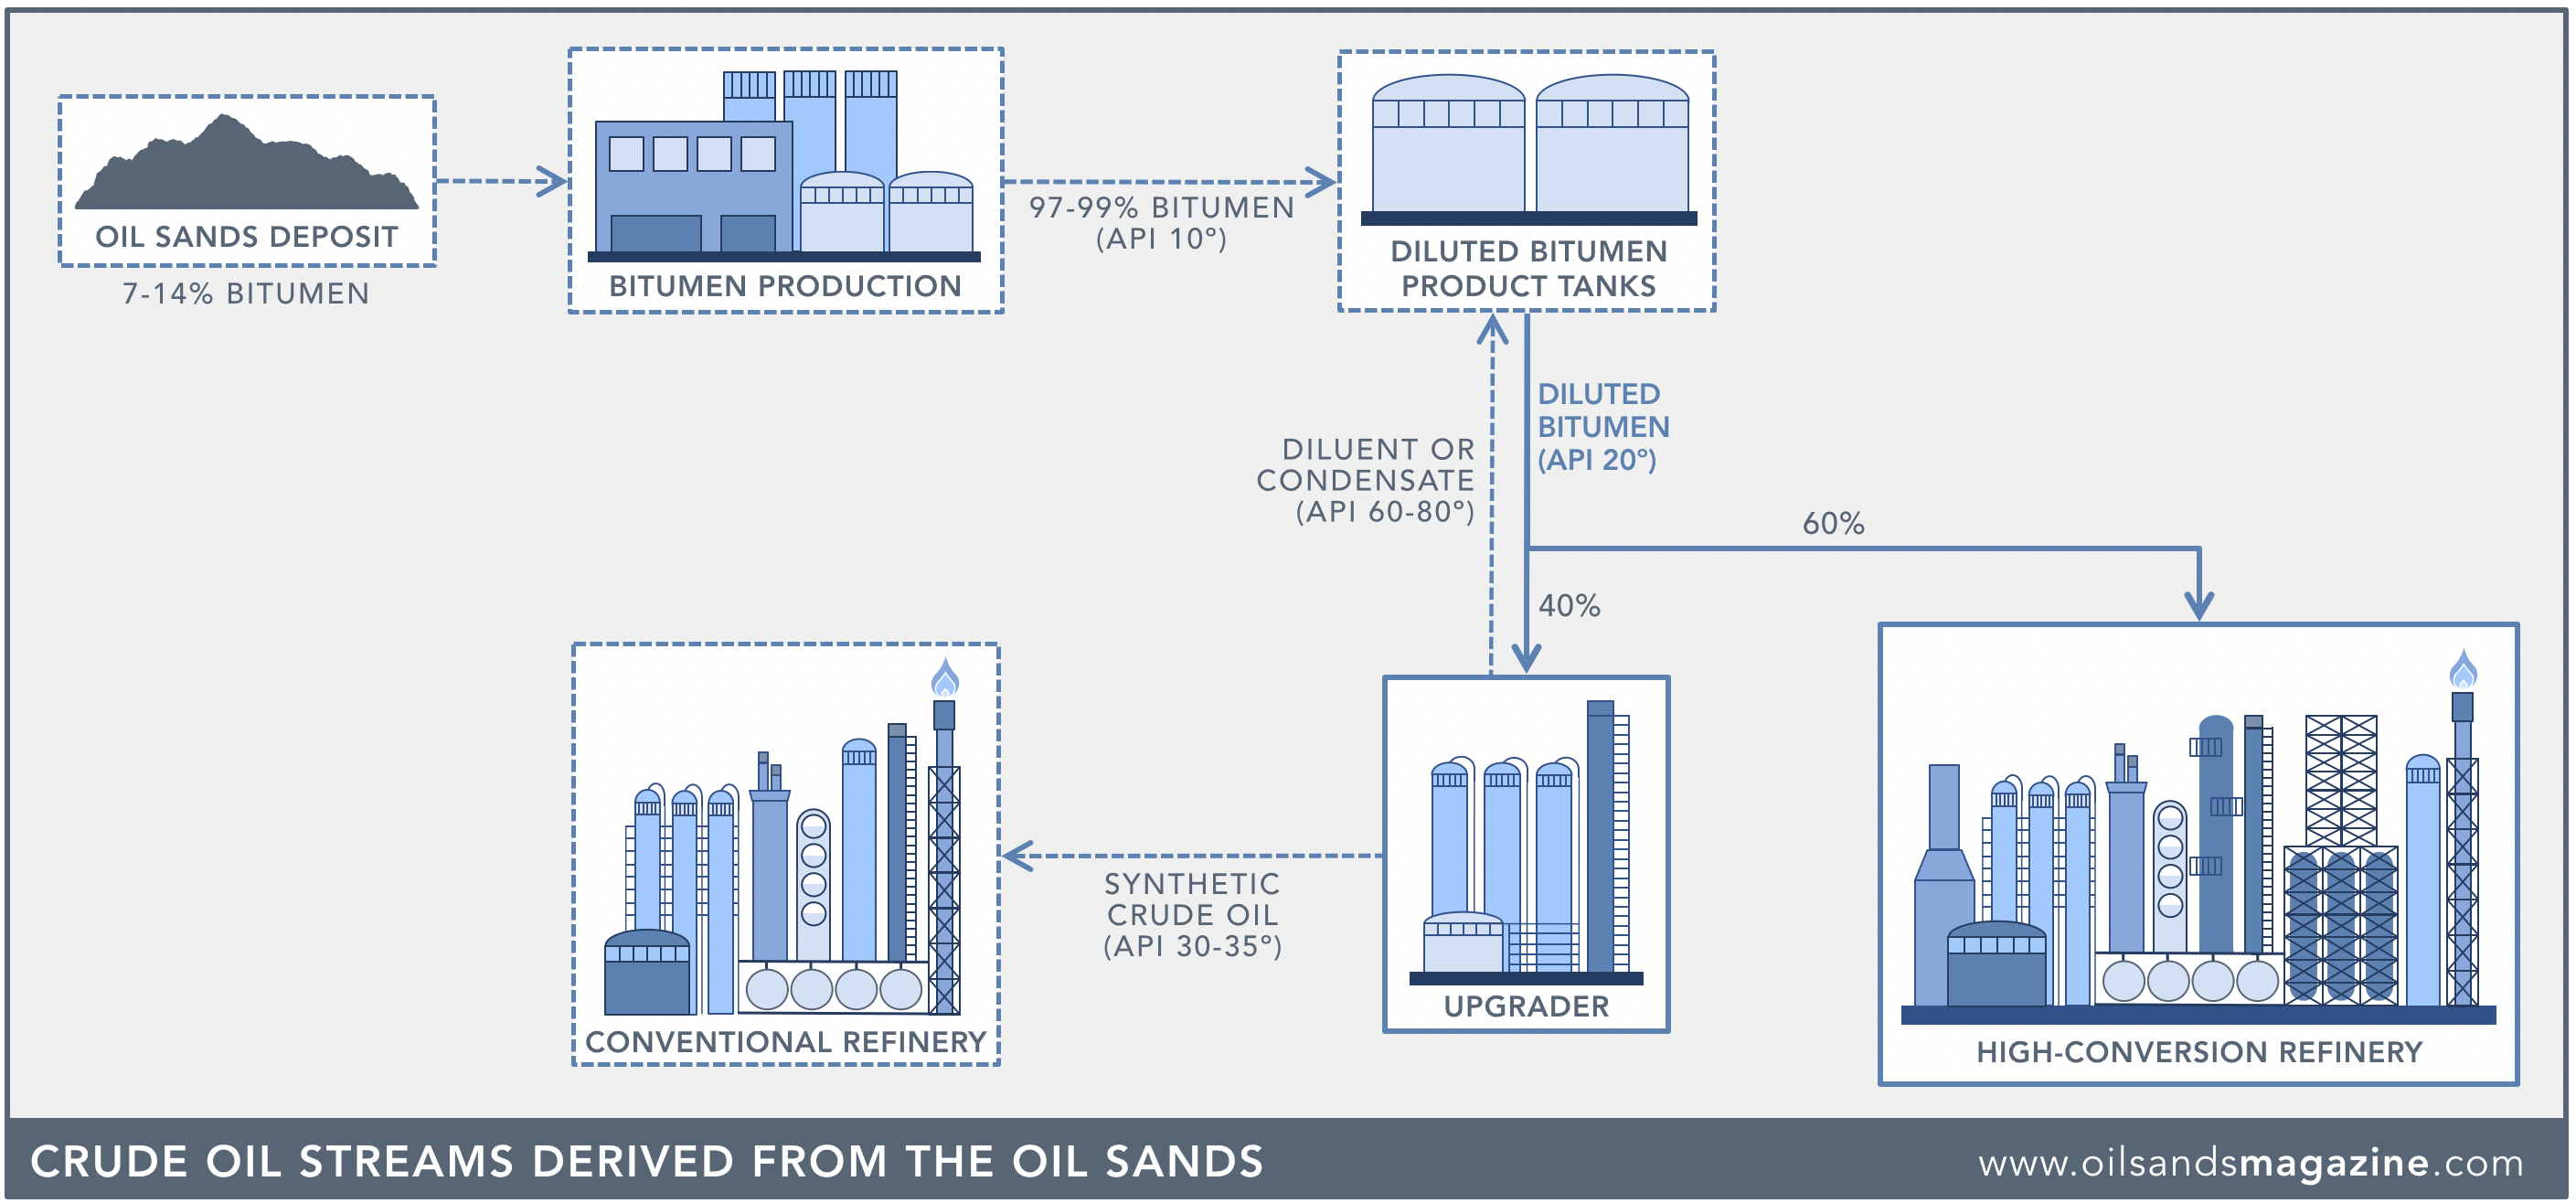 Oil Sands 101: Process Overview | Oil Sands Magazine